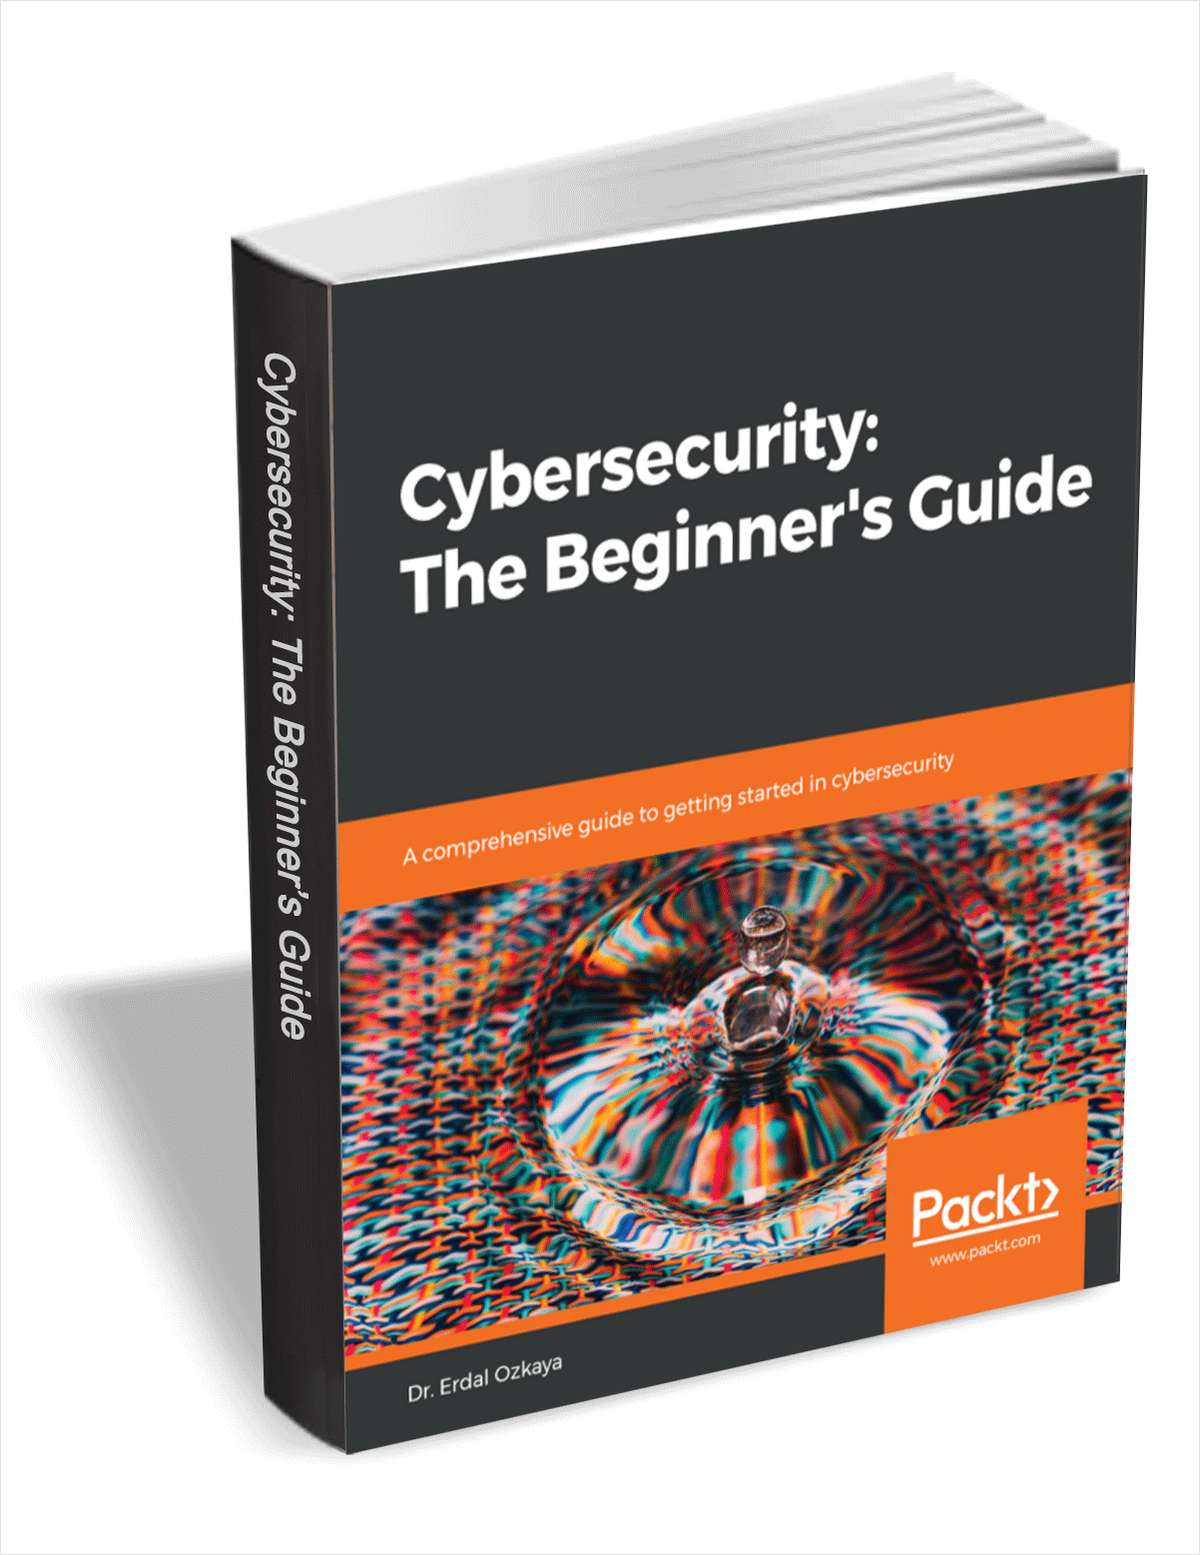 Cybersecurity: The Beginner's Guide ($29.99 Value) FREE For a Limited Time